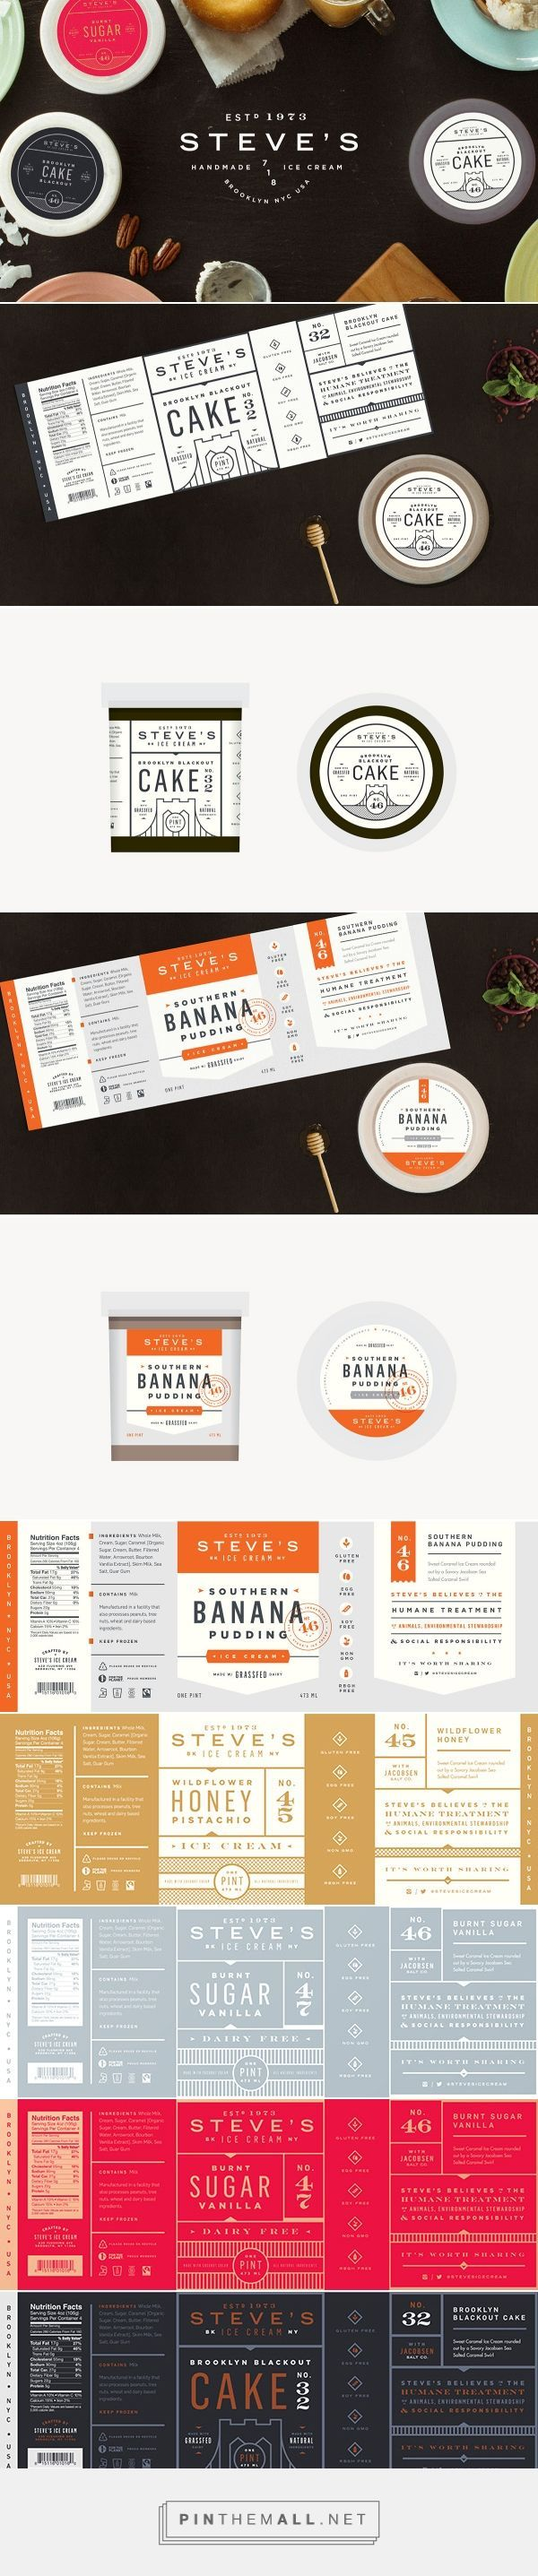 Steve's Ice Cream Brand by Chris Allen. Source: Packaging on Packaging Design Served. Pin curated by #SFields99 #packaging #design